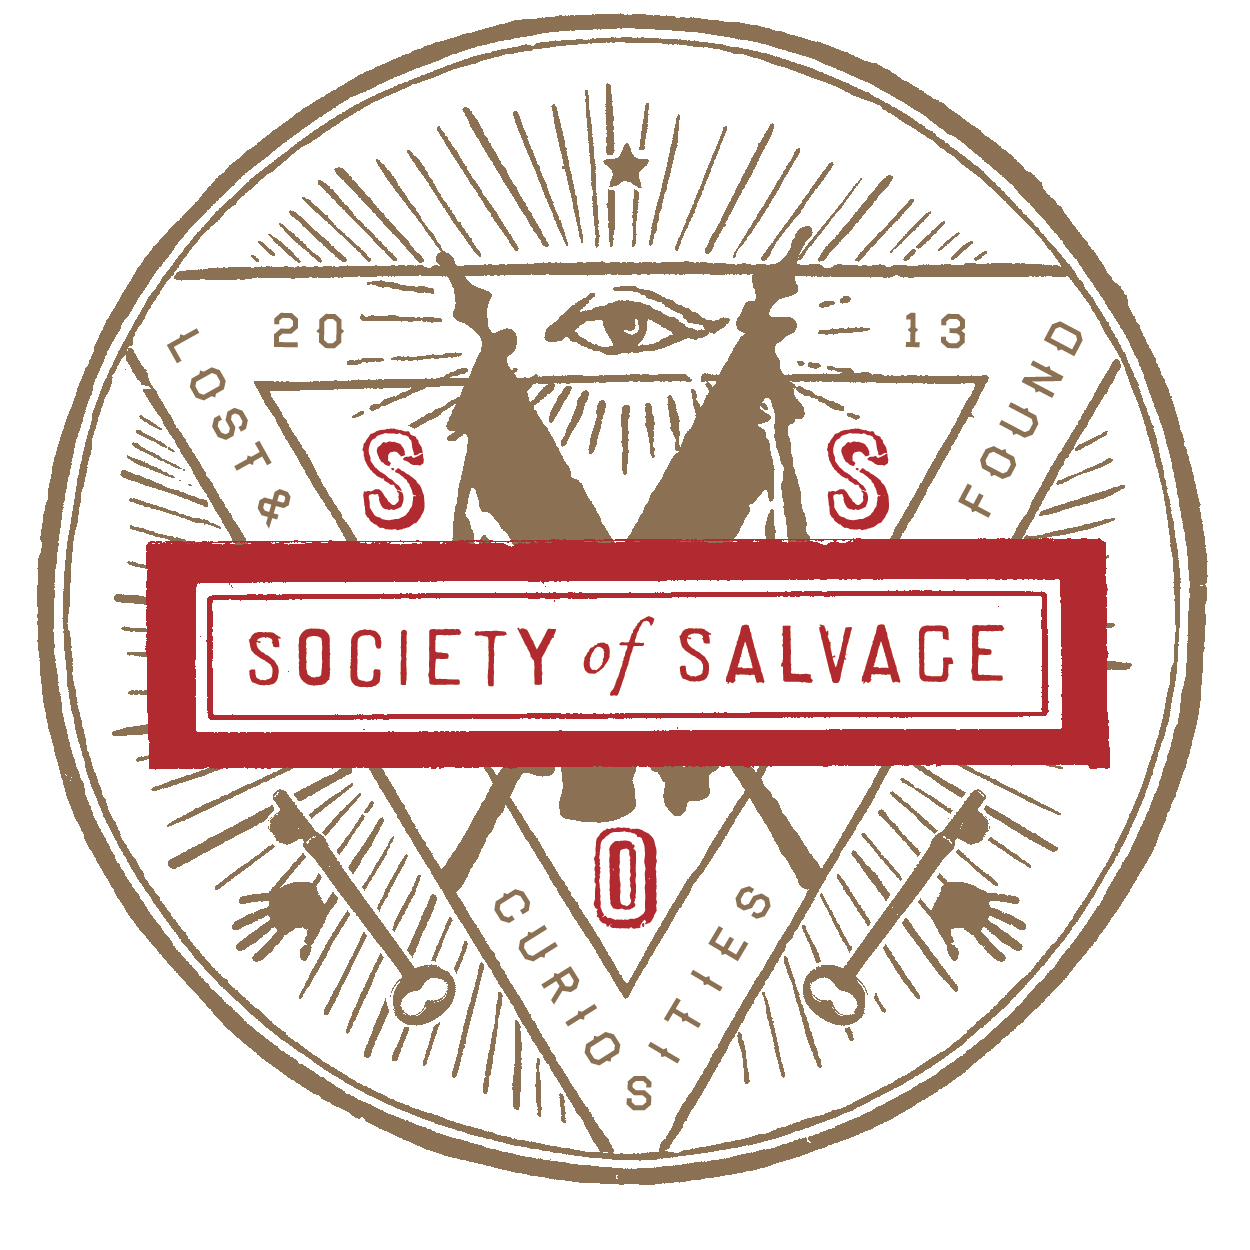 Society of Salvage